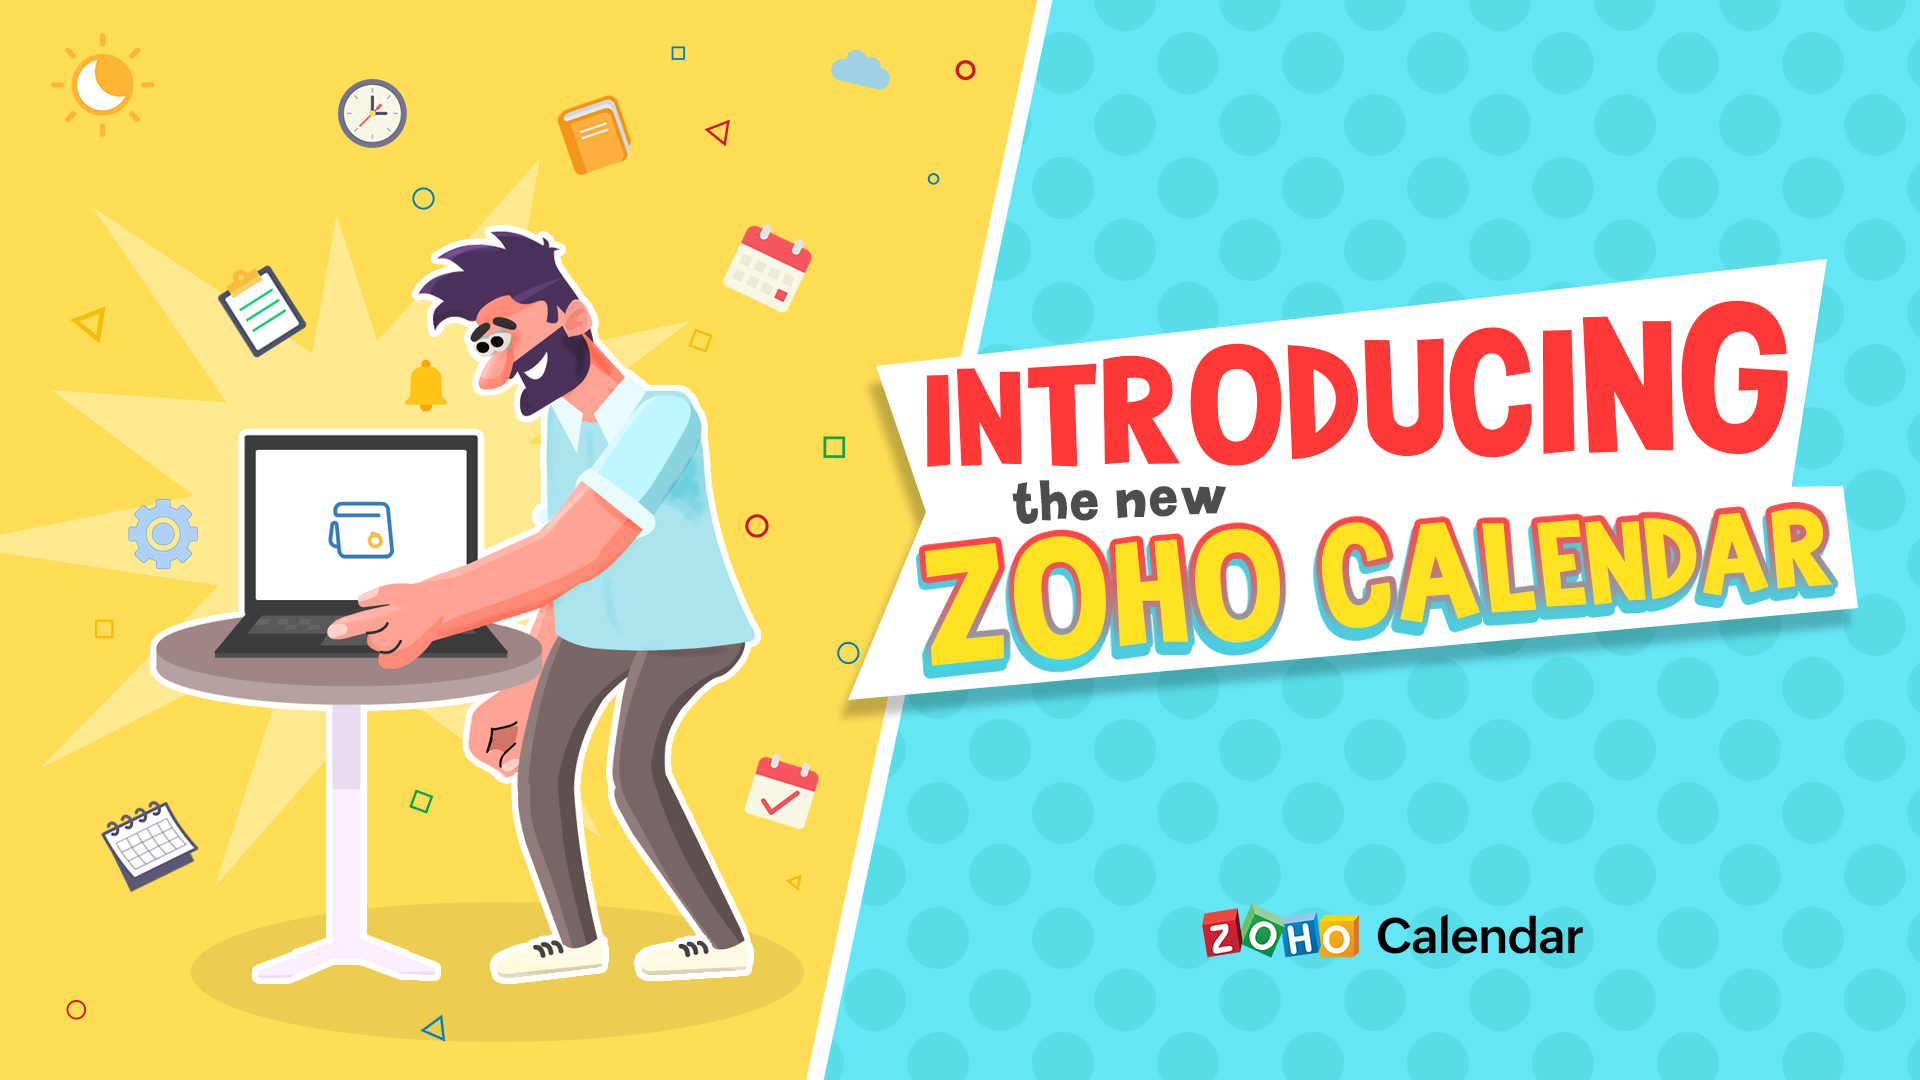 Introducing the new and improved Zoho Calendar!